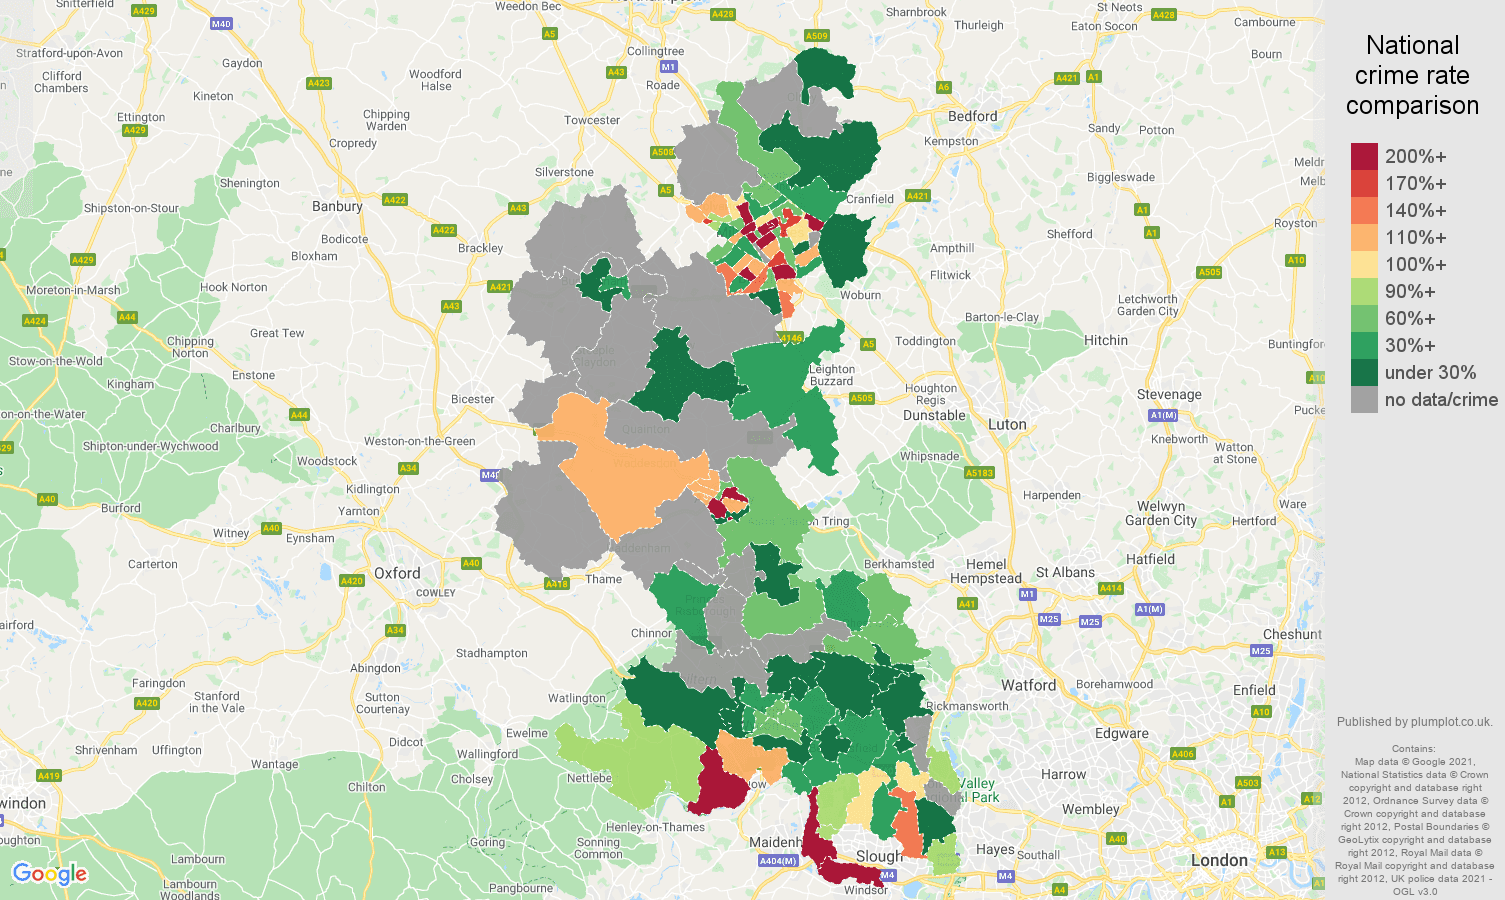 Buckinghamshire bicycle theft crime rate comparison map